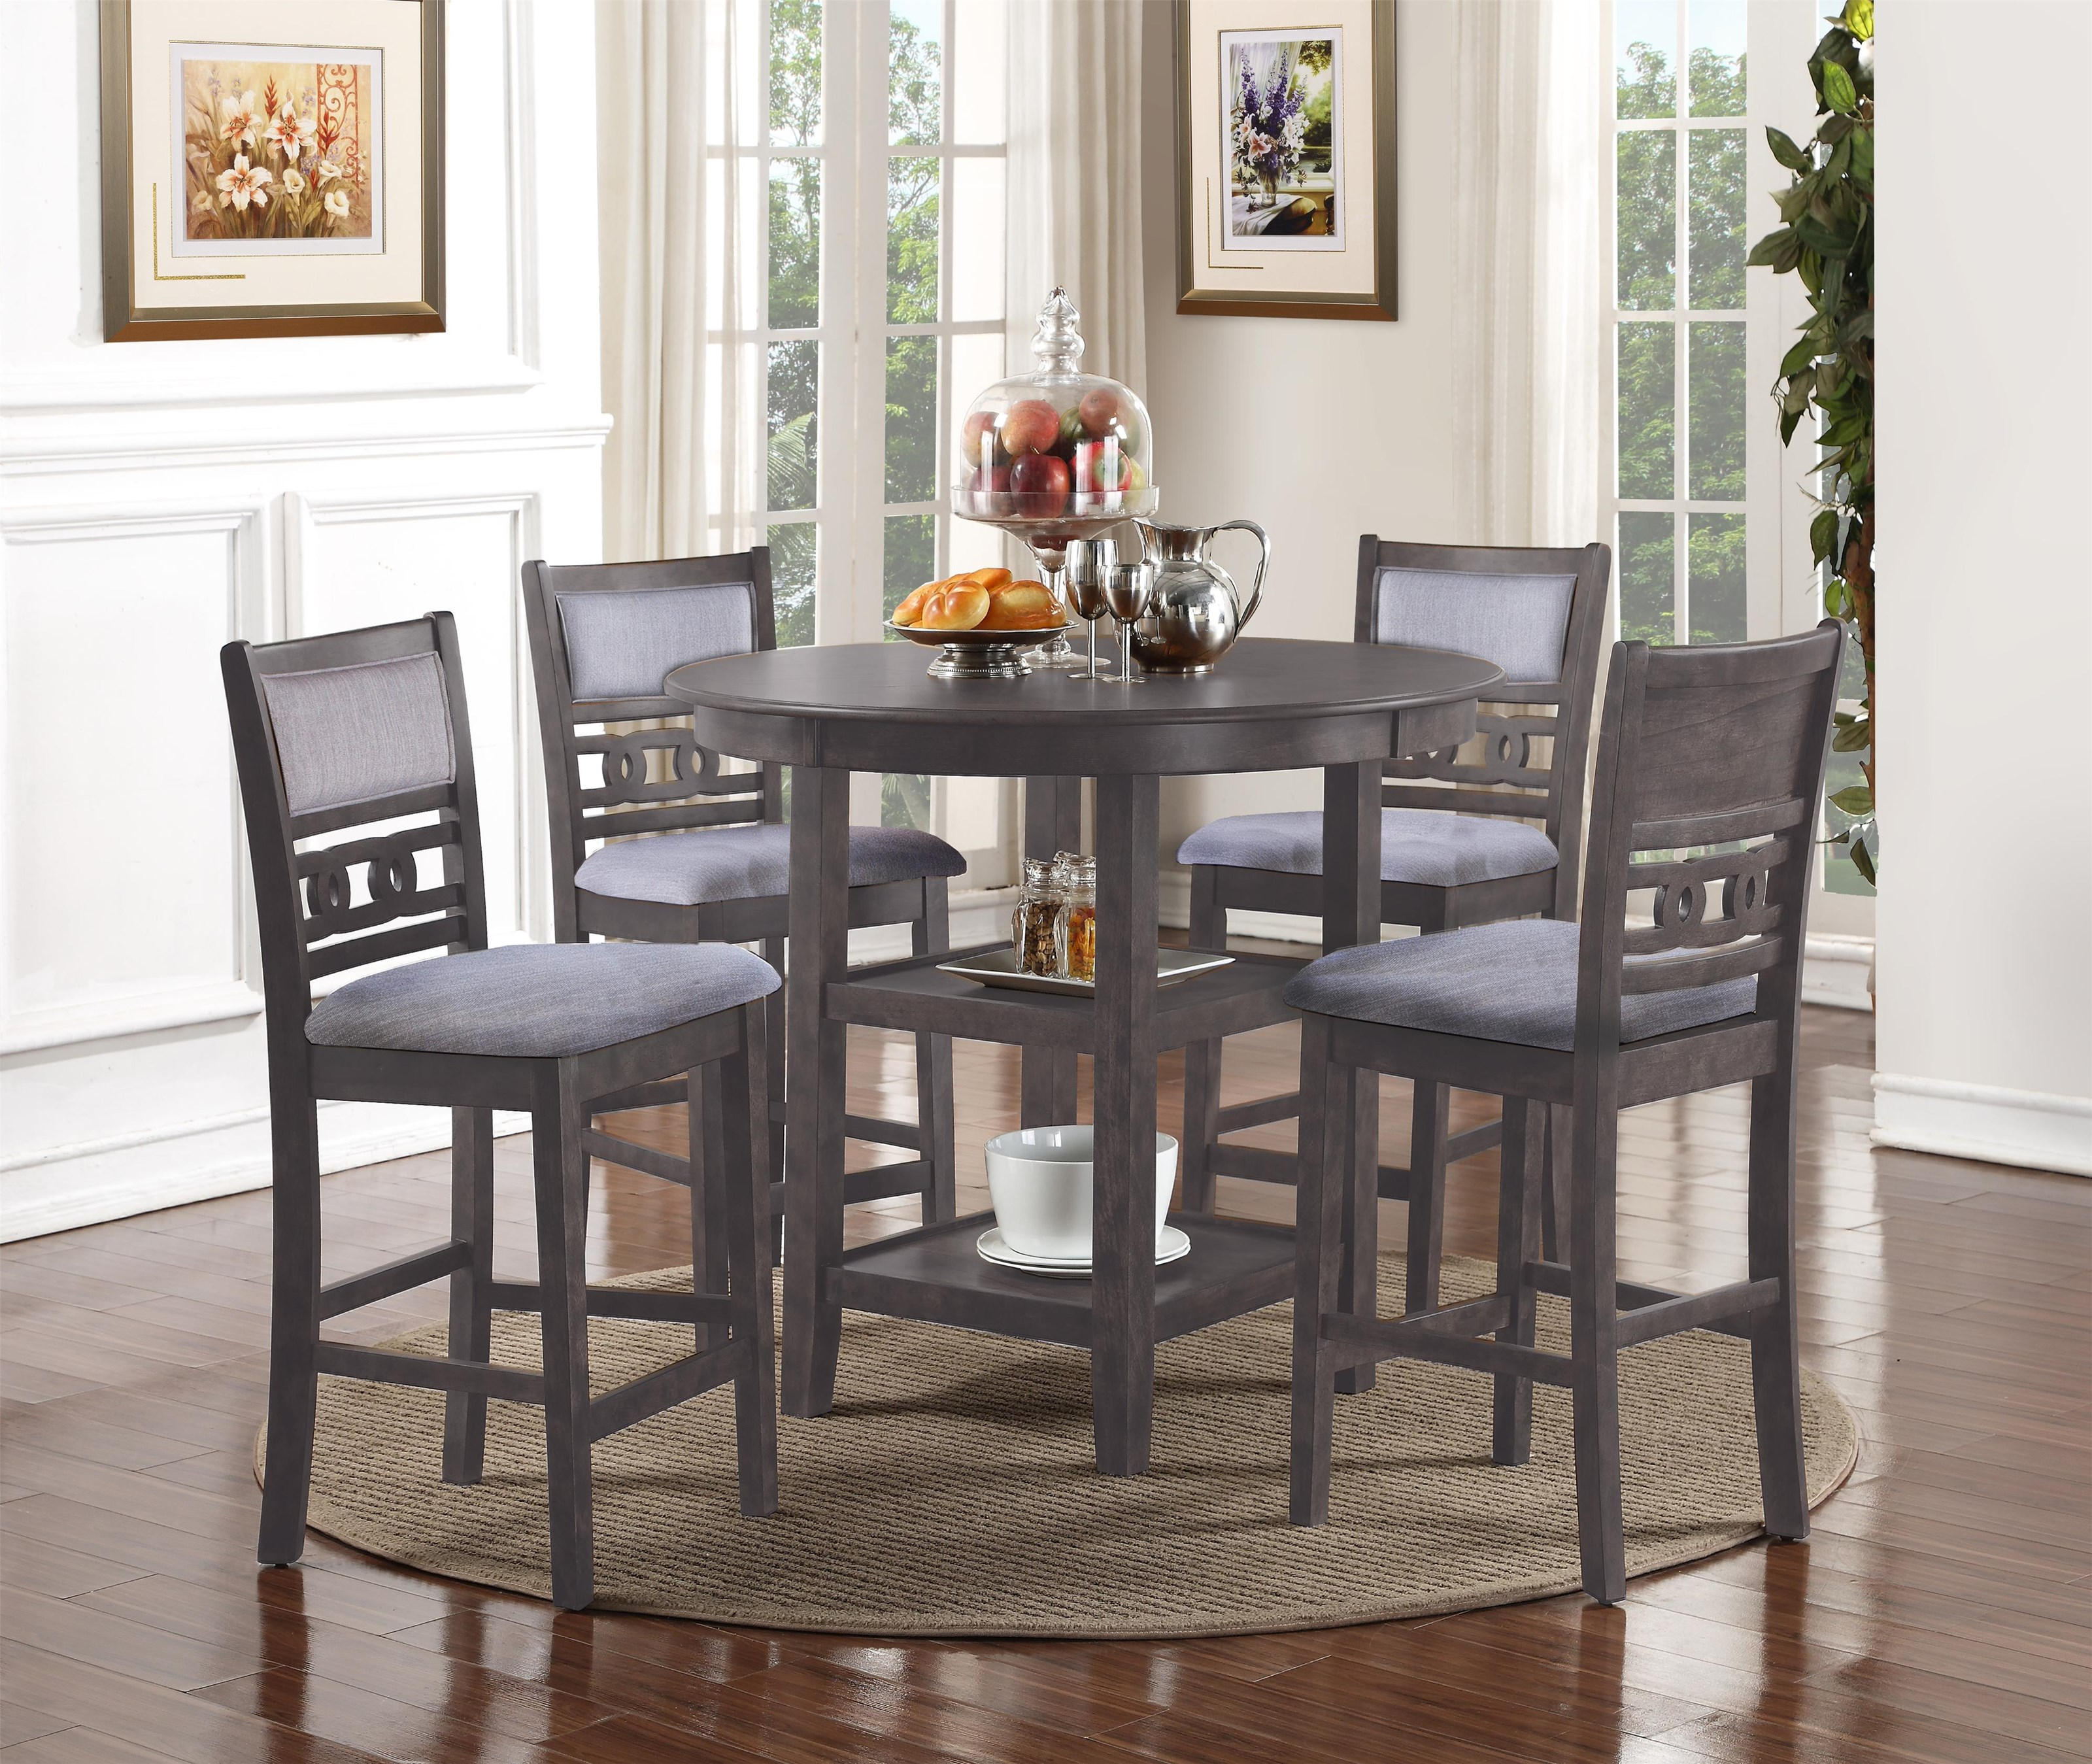 Gia Gray Counter Height Dining Table and Chair Set by New Classic at Sam Levitz Outlet